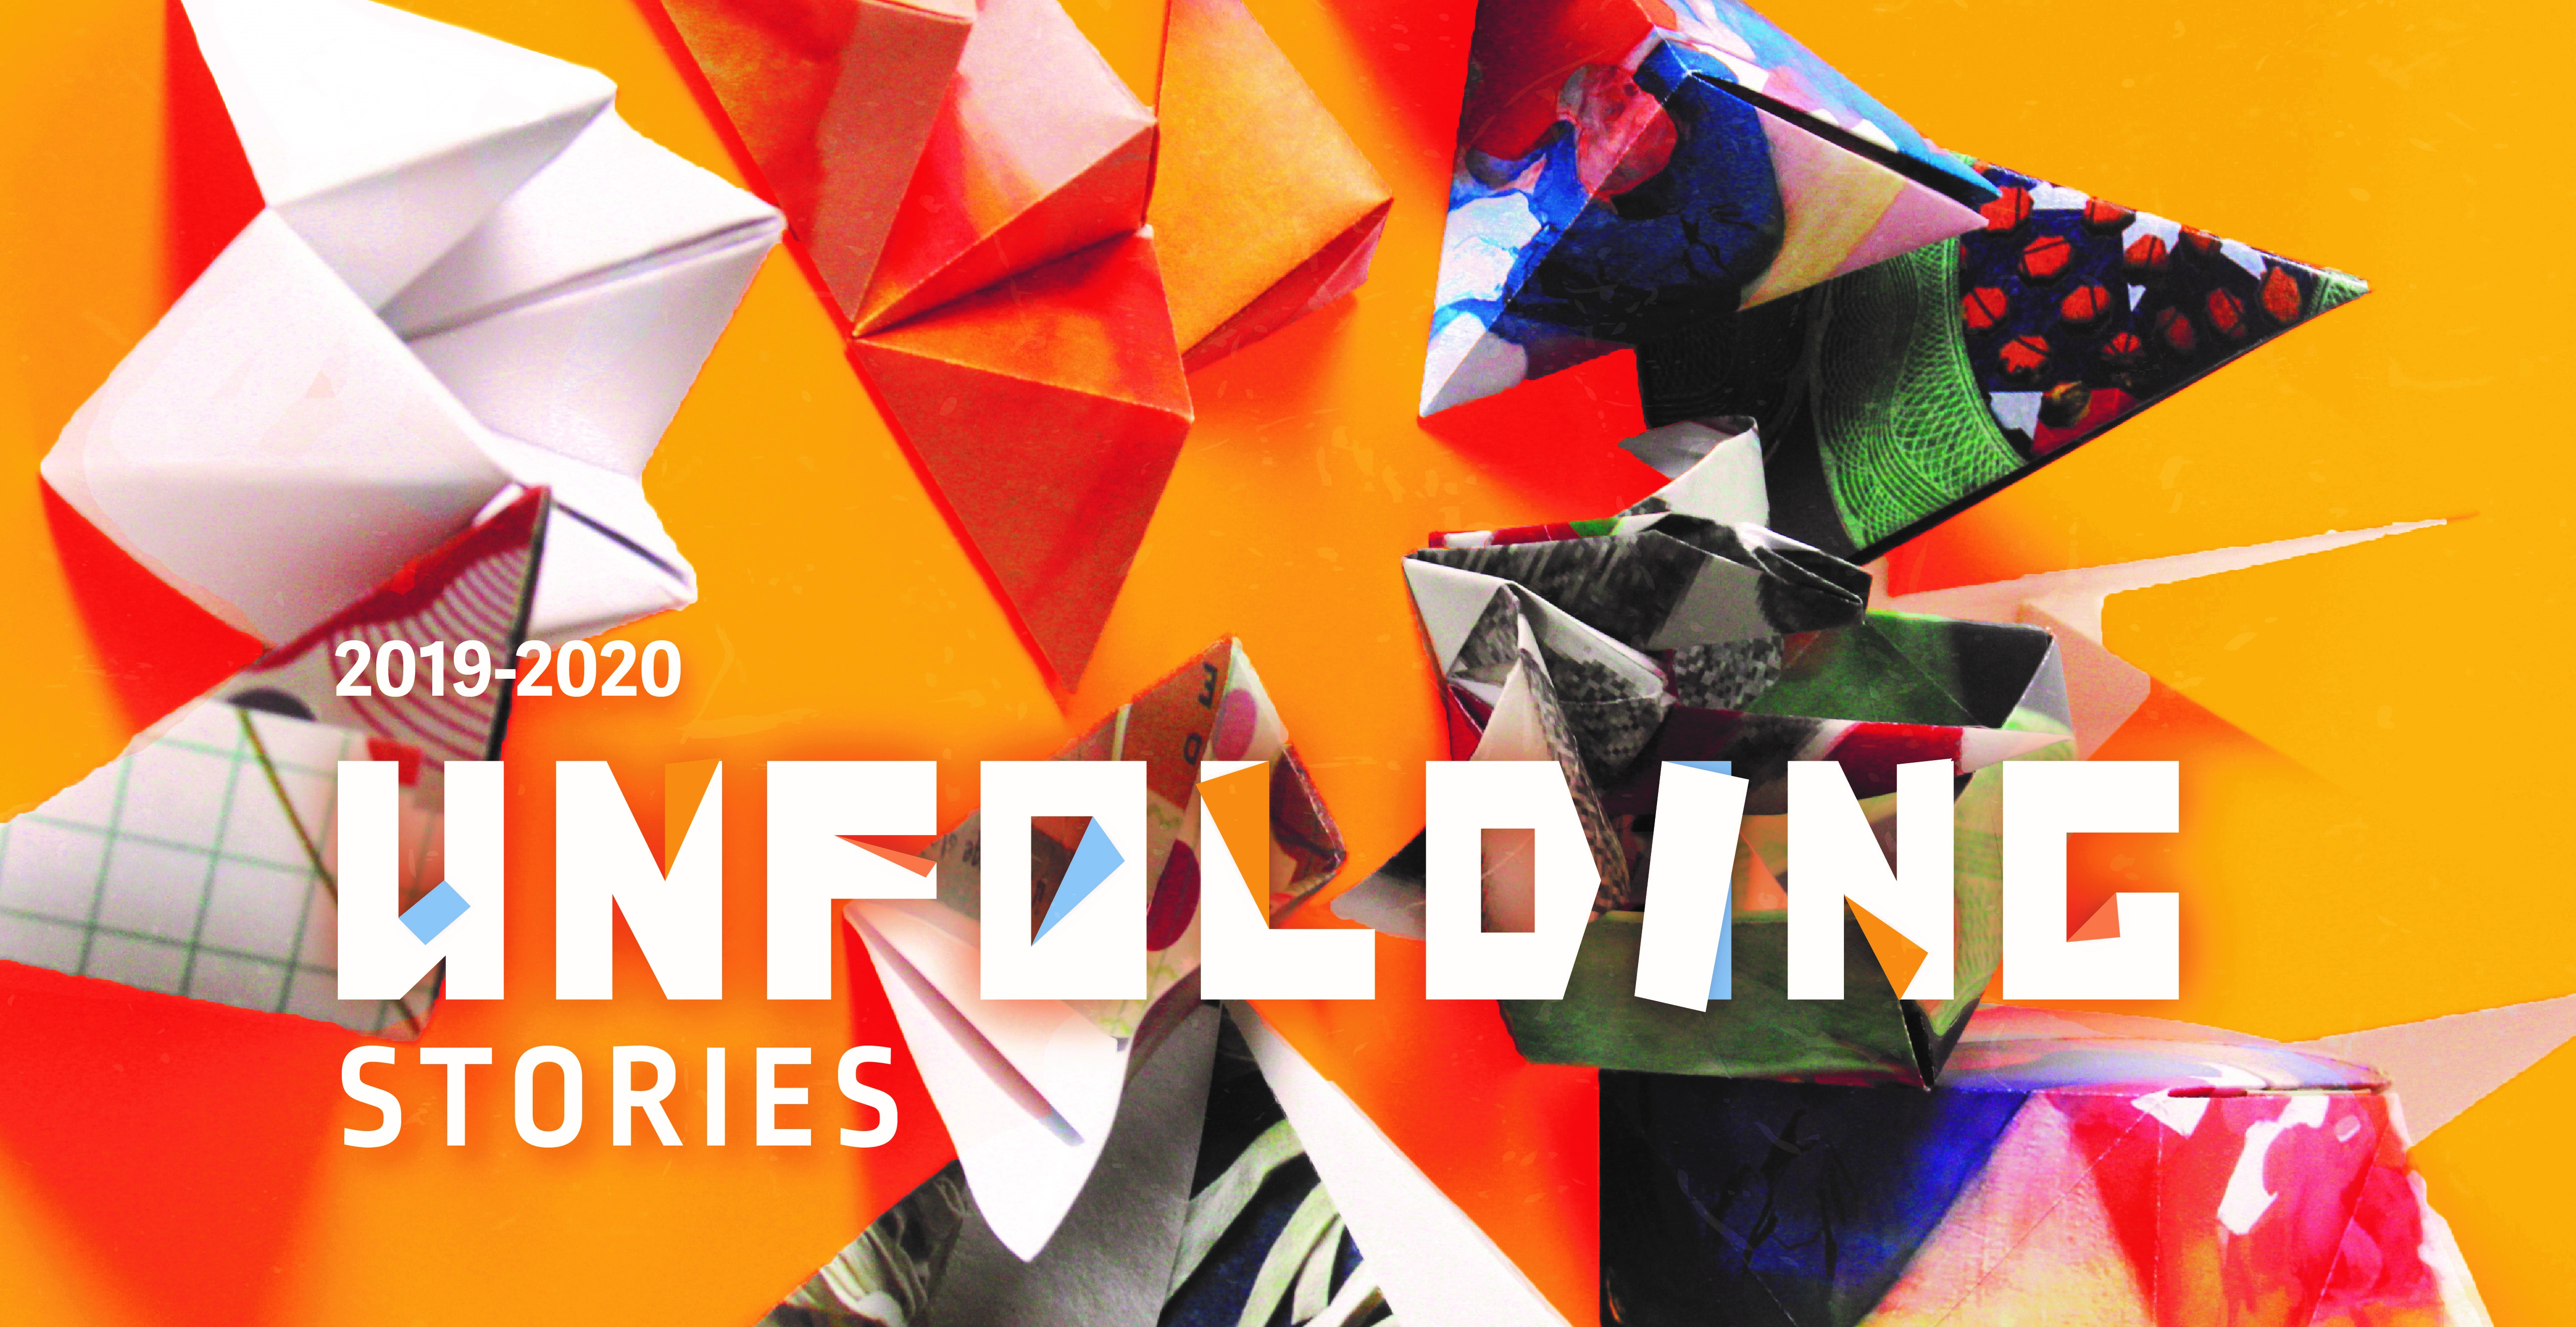 """Text """"Unfolding Stories"""" with origami paper shapes, orange background"""